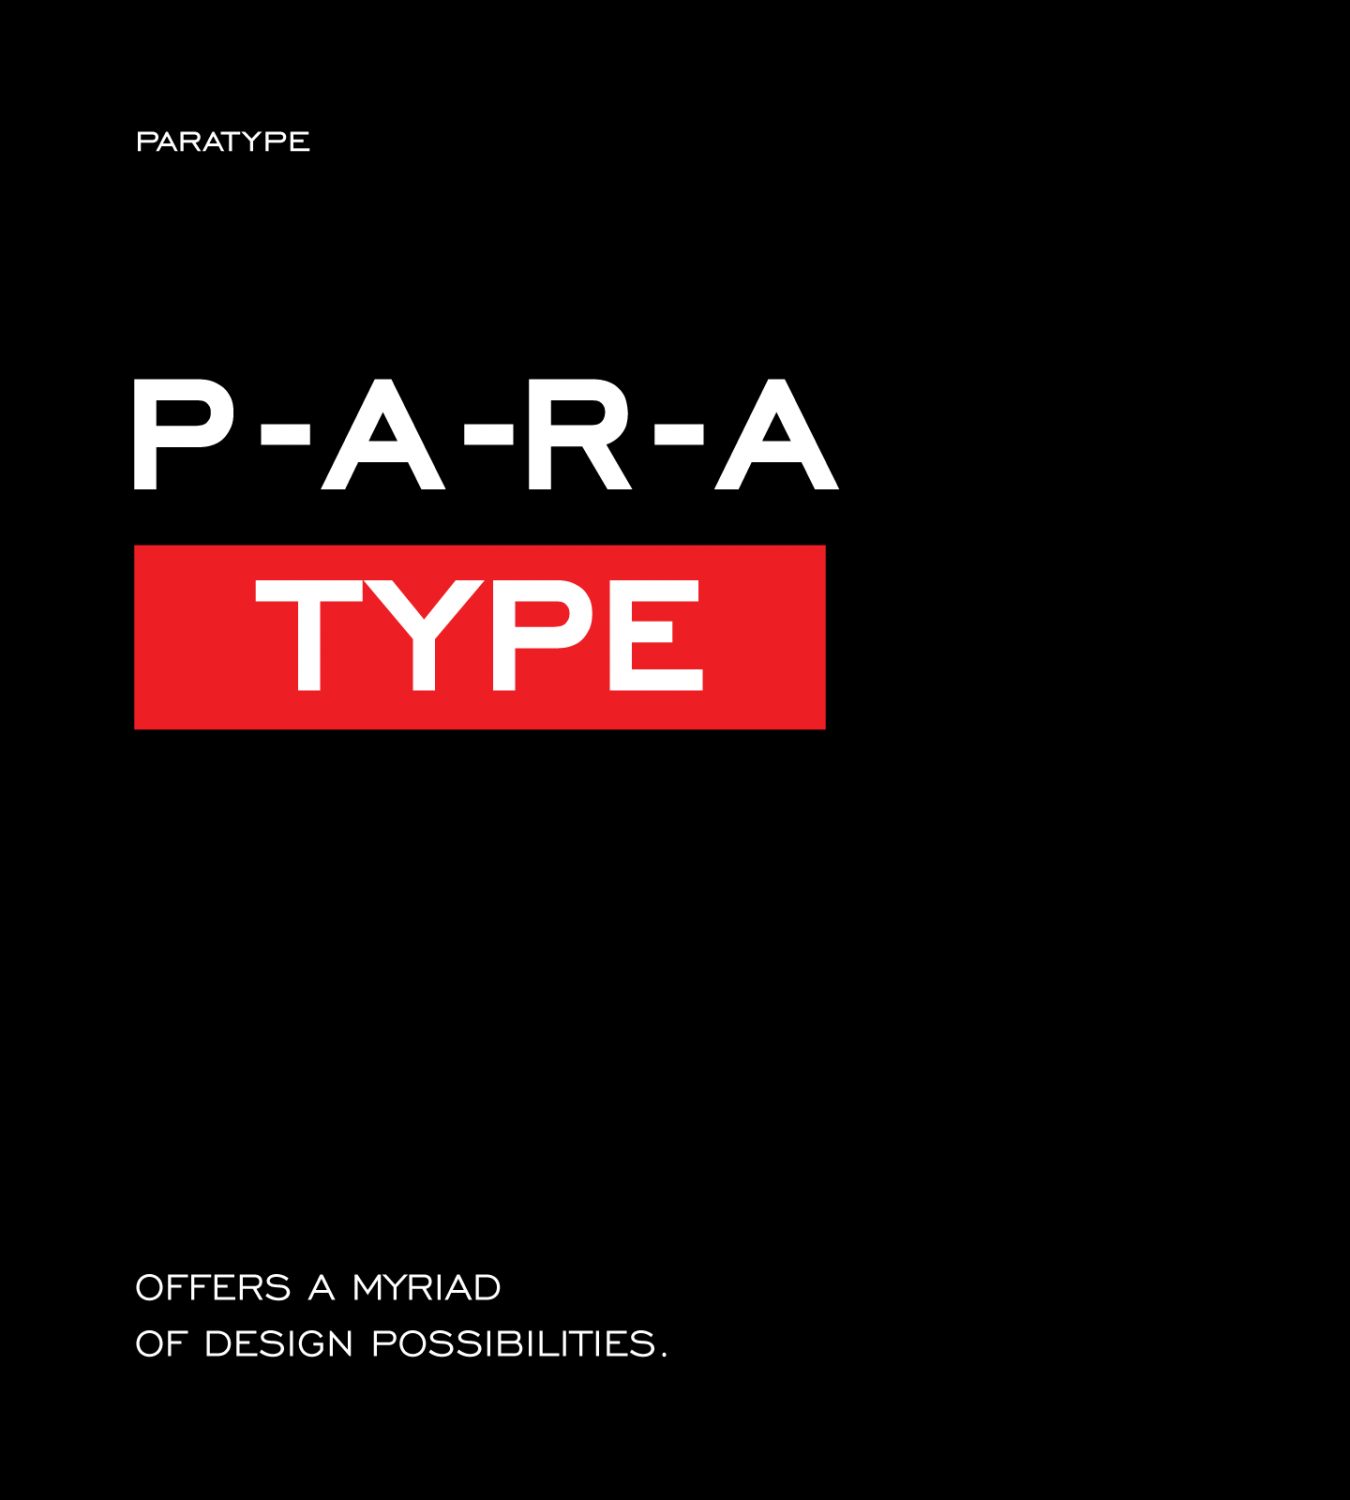 ParaType Offers A Myriad Of Design Possibilities